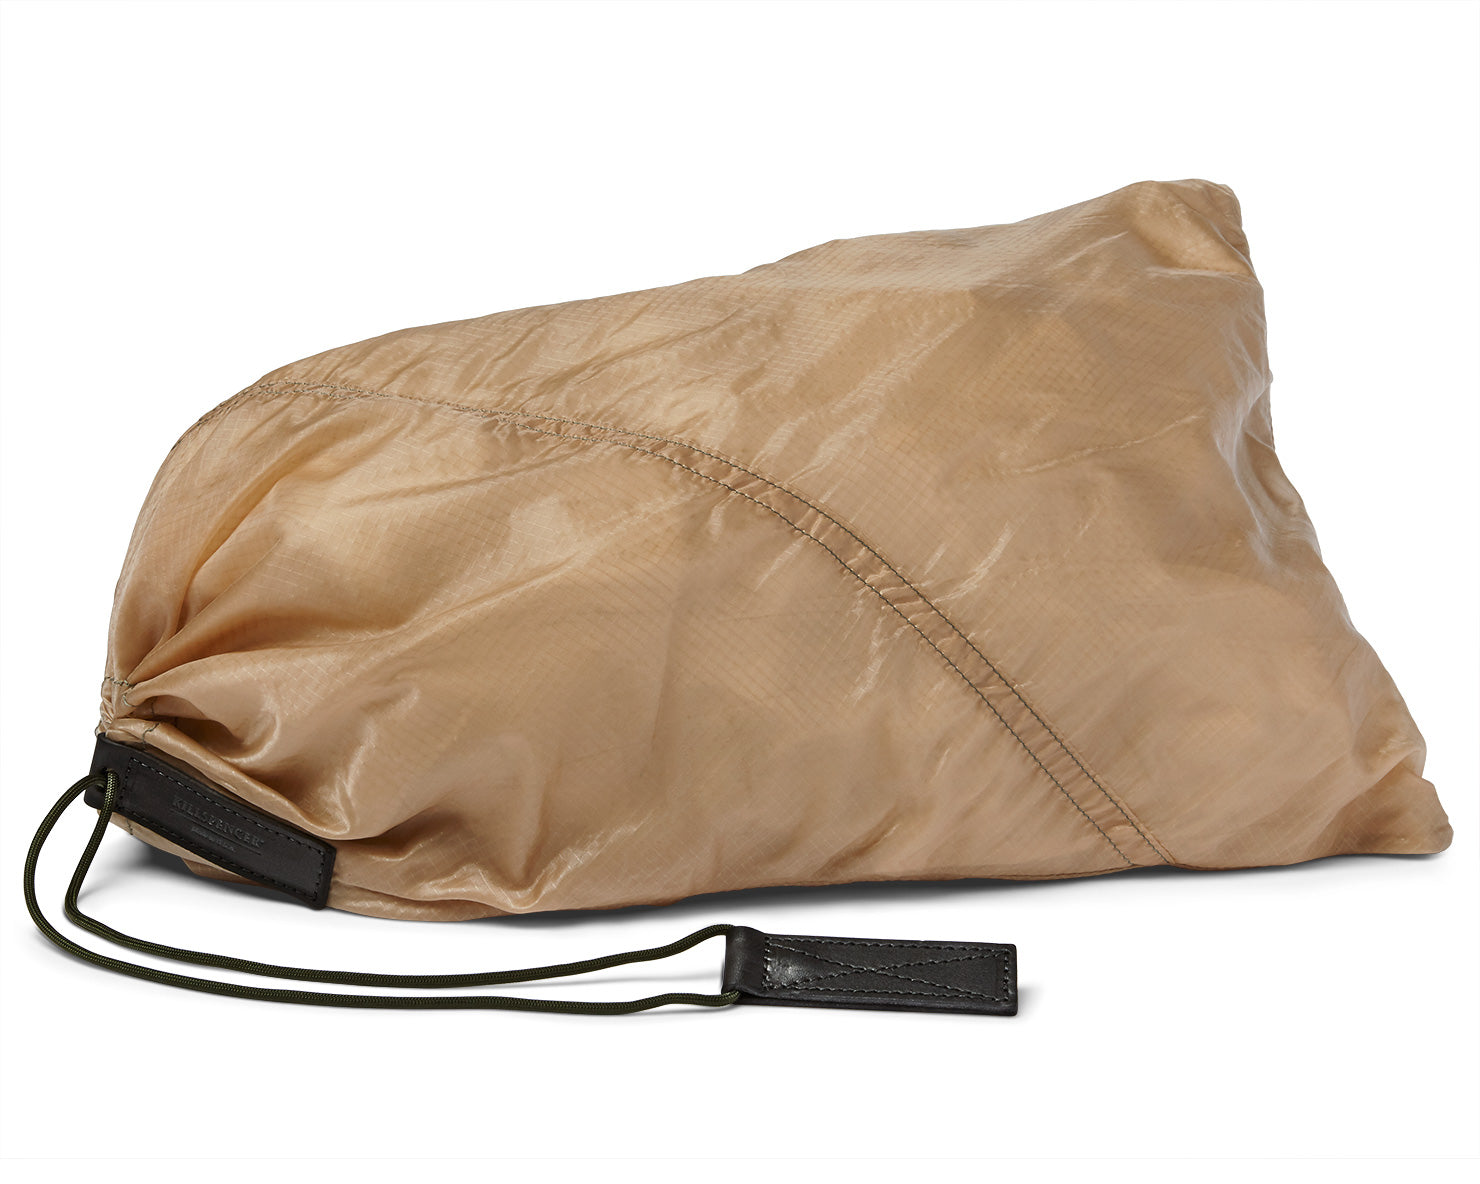 PARACHUTE BAG 2.0 | KILLSPENCER® - Tan Parachute